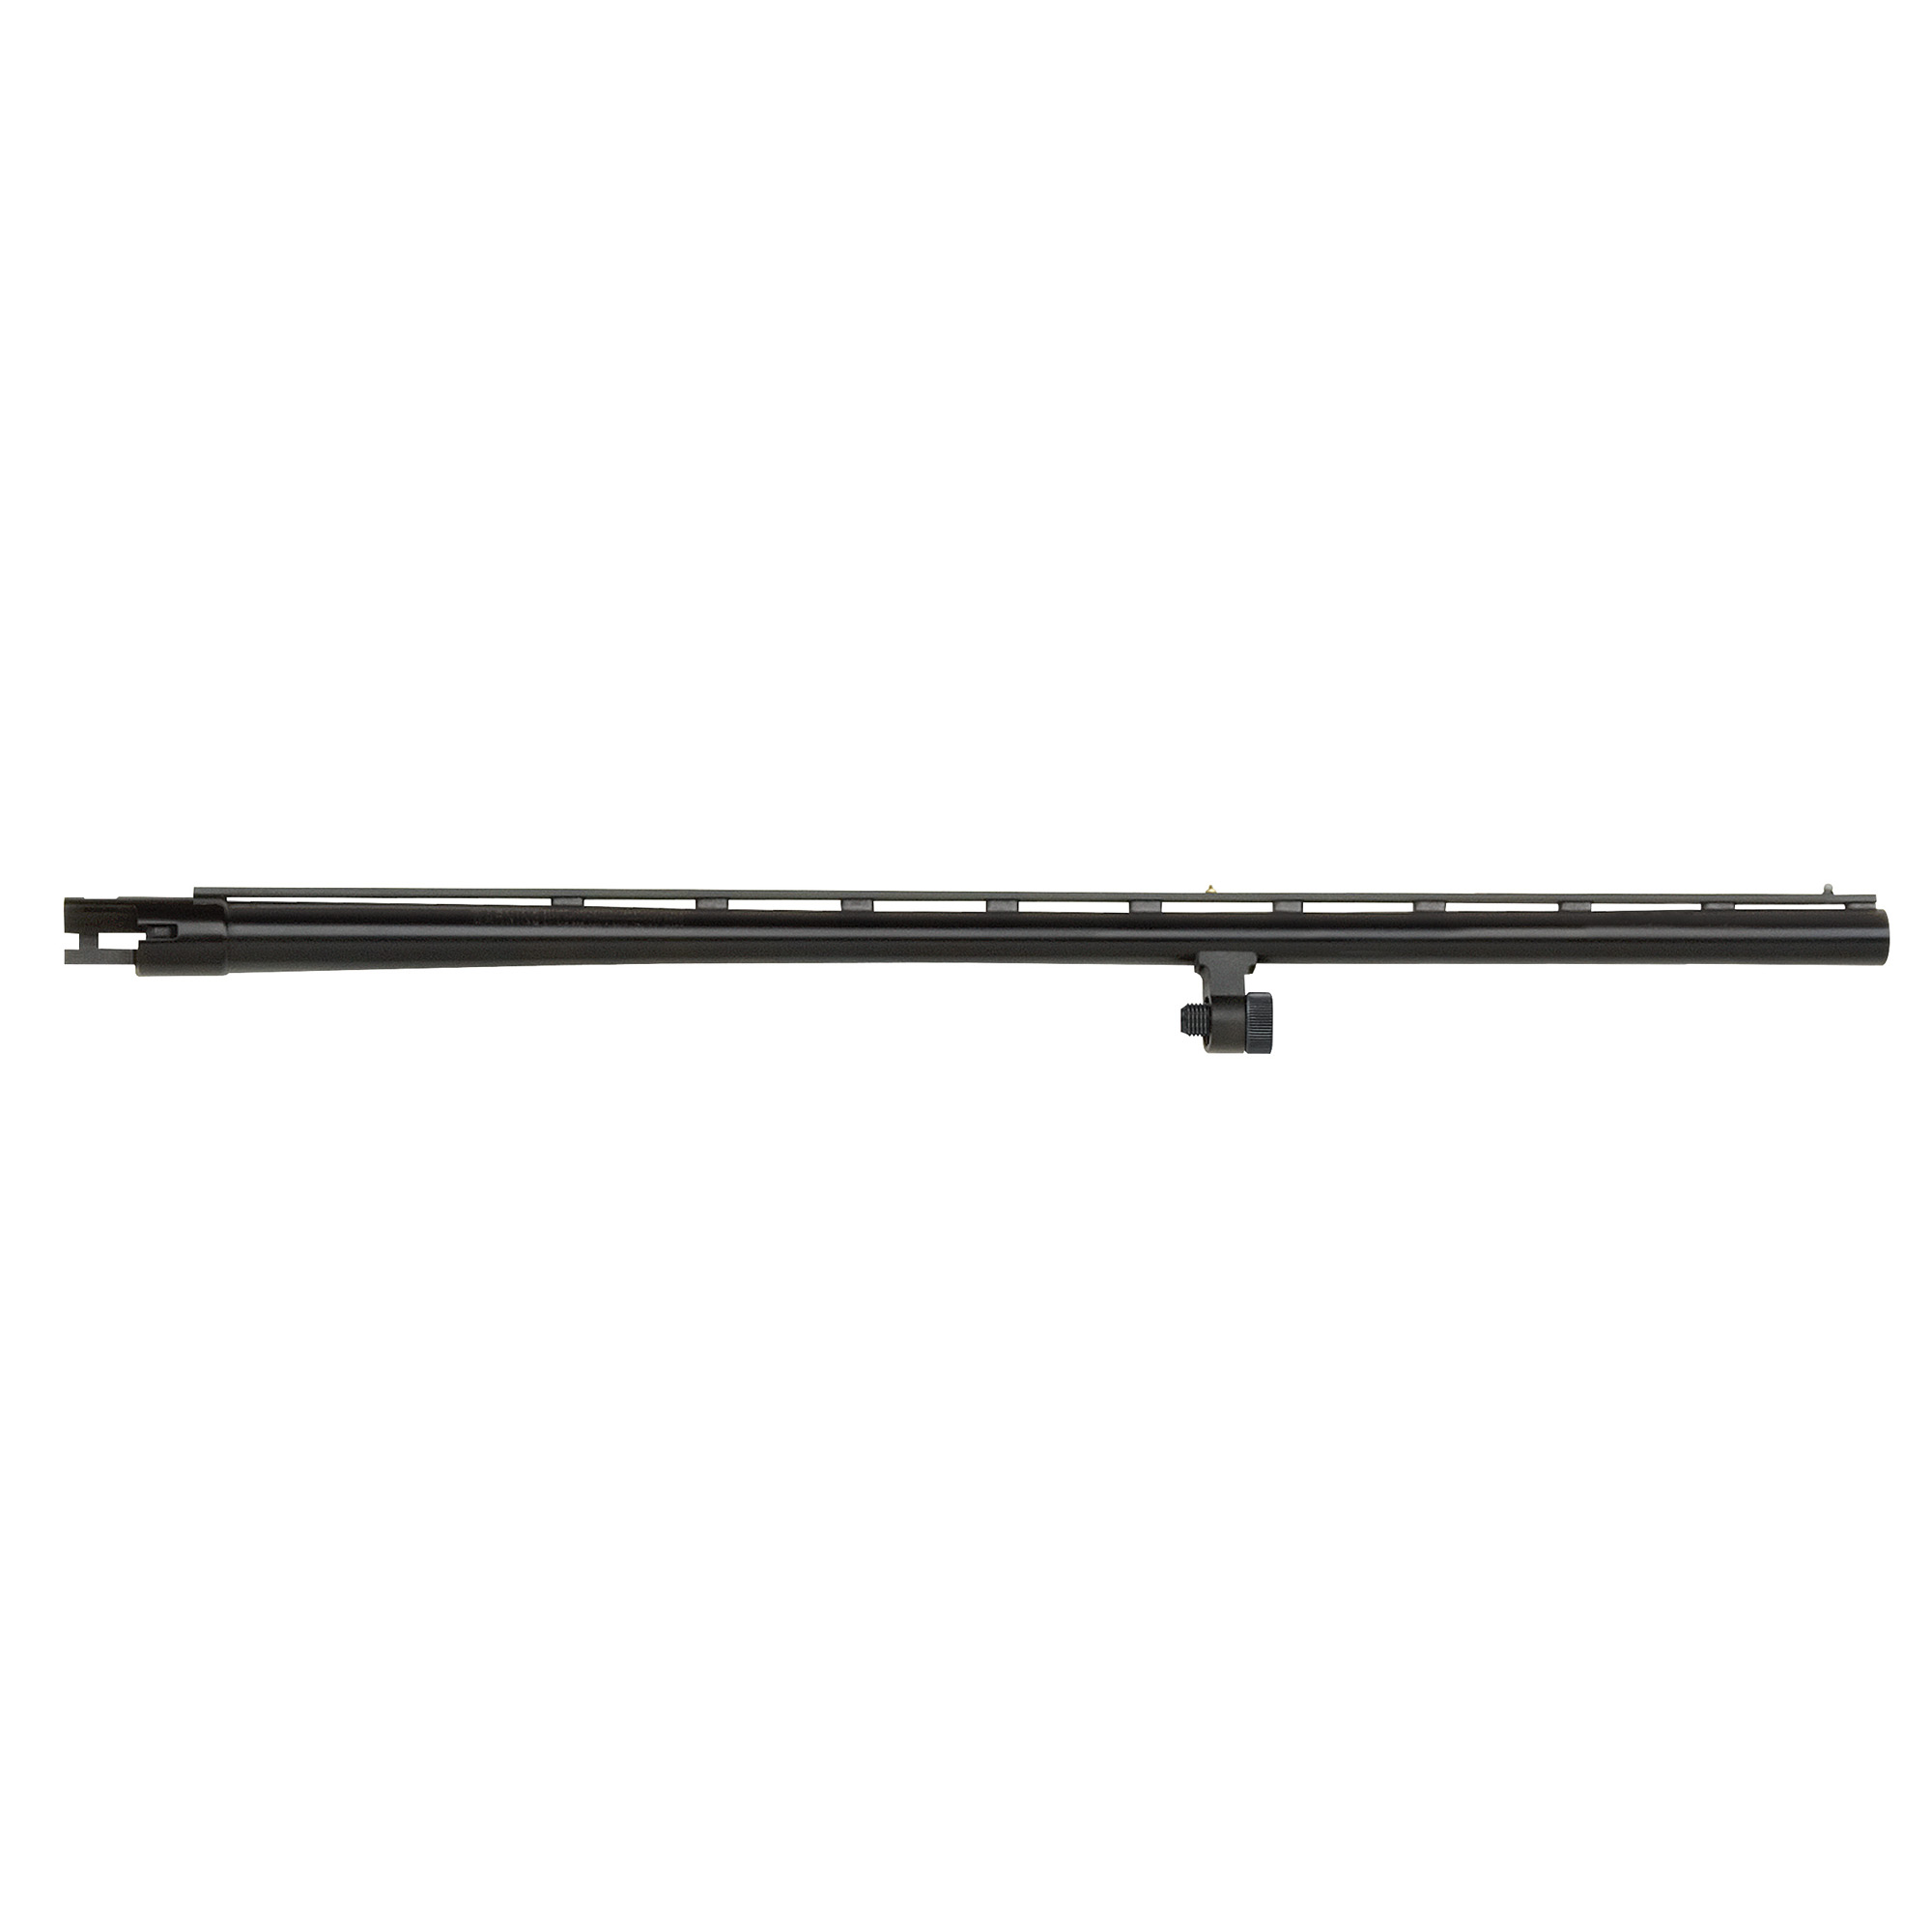 """24"""" All-Purpose barrel with vent rib"""" dual bead sights"""" smoothbore"""" and blued finish. Includes Accu-Choke set (Improved Cylinder"""" Modified"""" Full) and choke tube wrench. Compatible with 12 Gauge Mossberg 500 and Maverick 88 6-shot models."""